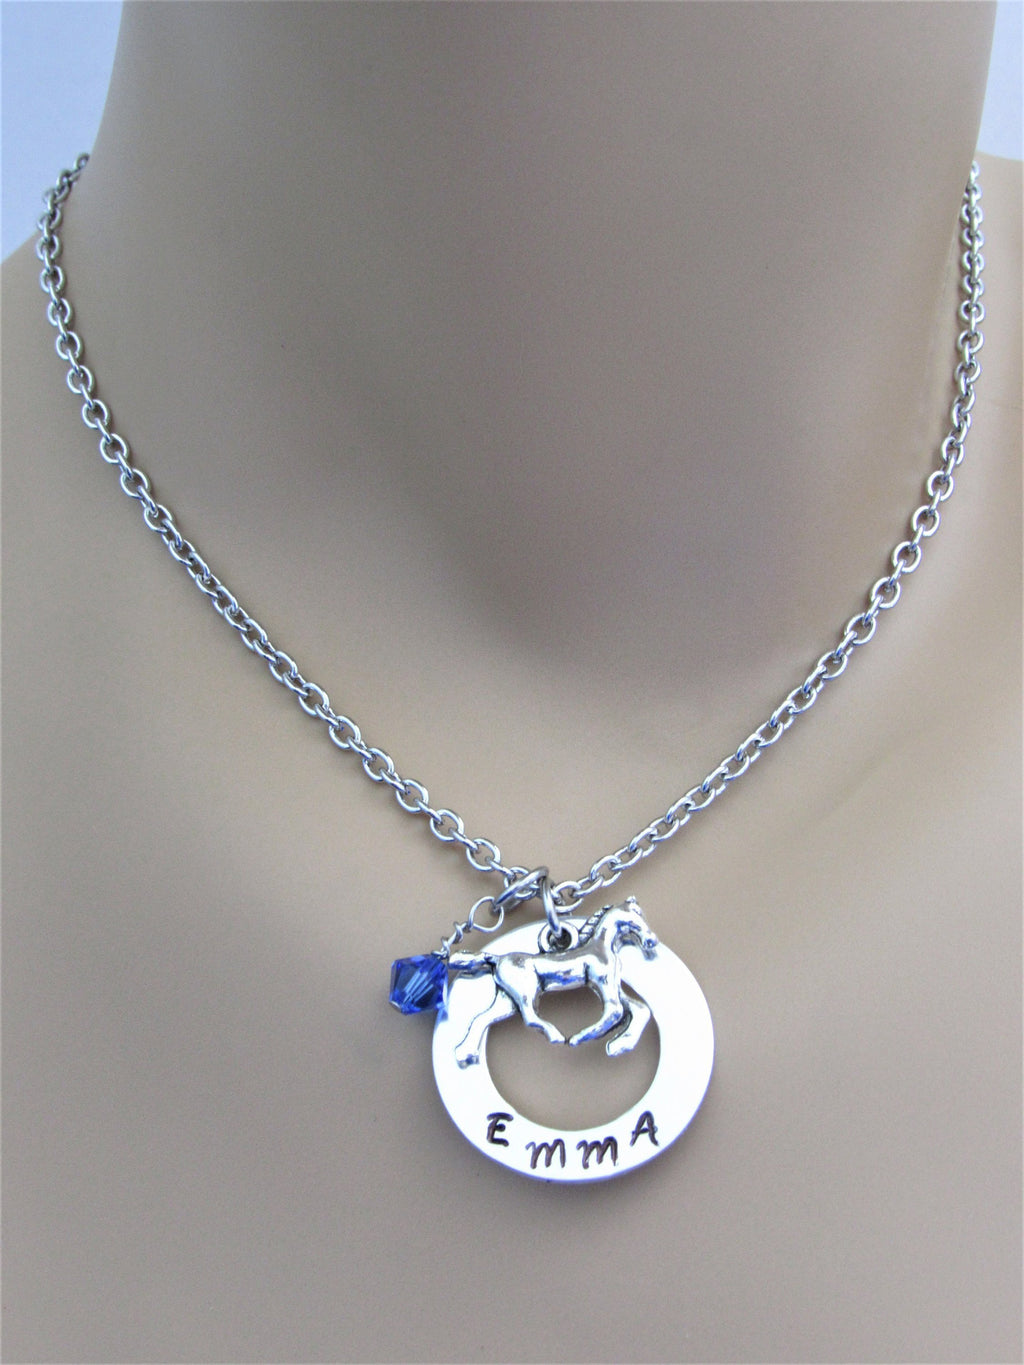 Personalized Stamped Necklace w/ Horse Charm and Swarovski Crystal Birthstone Bead